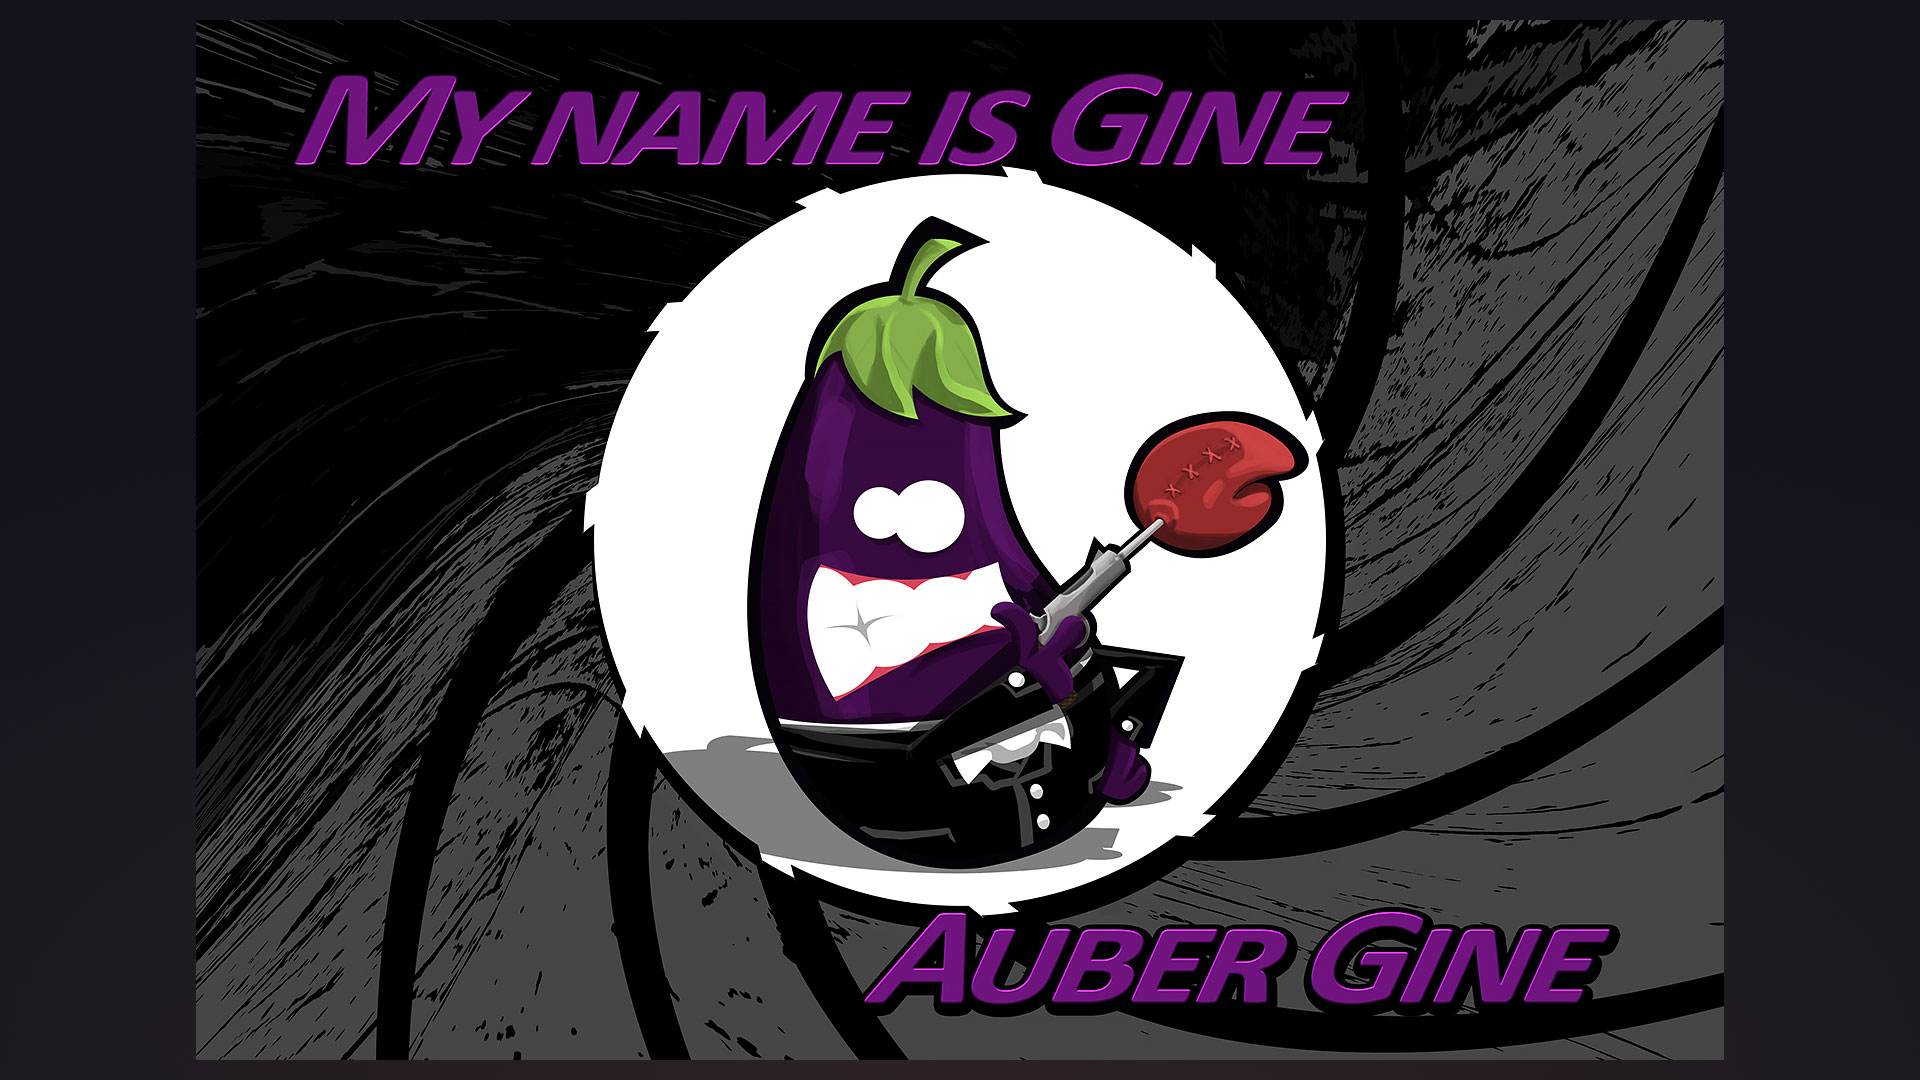 Digital Painting and Illustration - Auber Gine poster